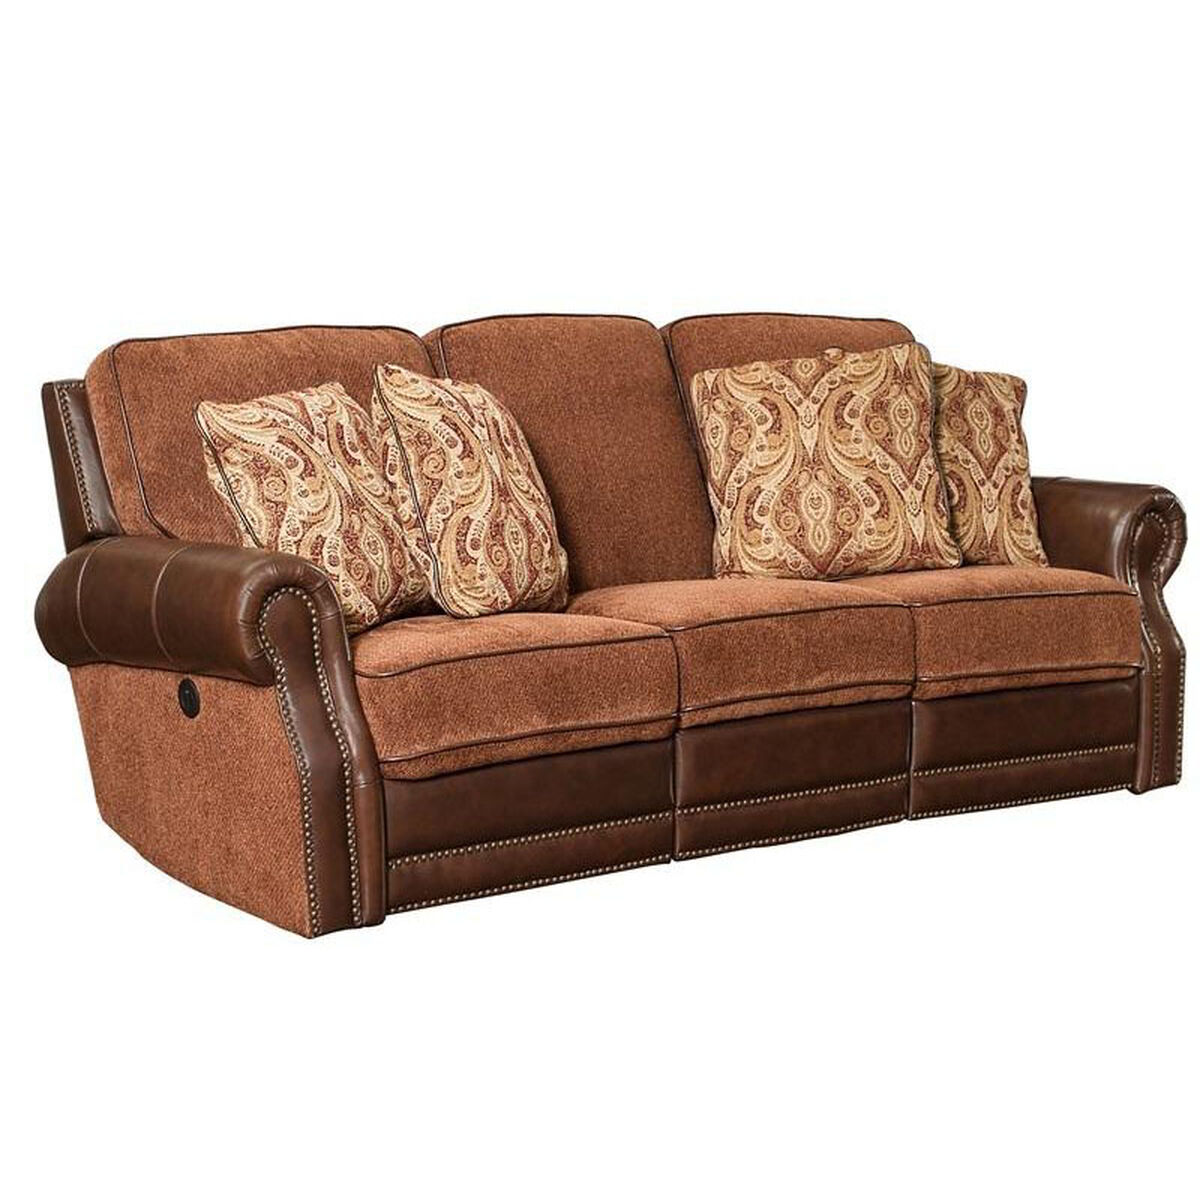 Our Jefferson Leather And Chenille Sofa Yadkin Bark Is On Now